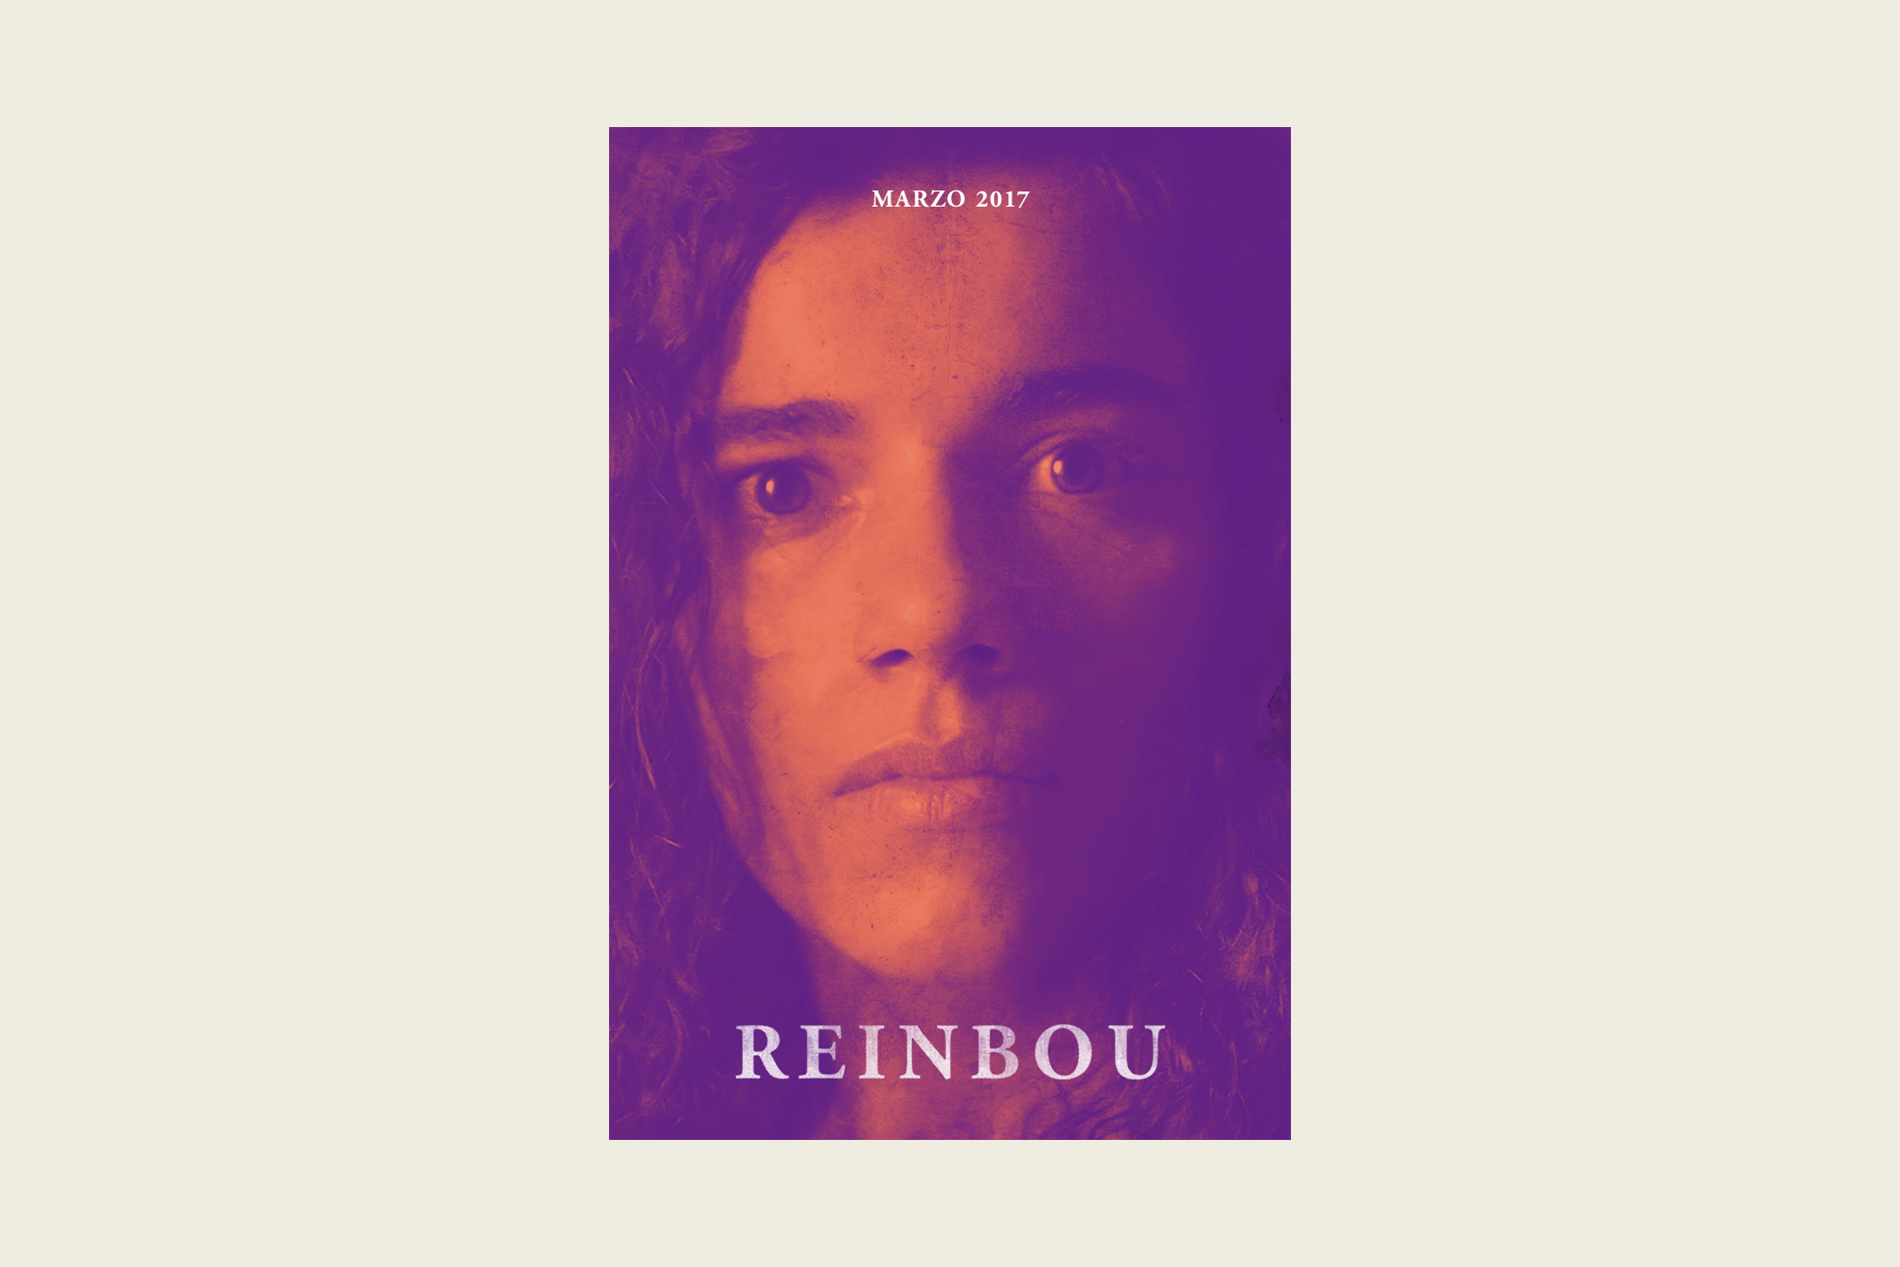 Reinbou_Project34_Reinbou-copy-2.png